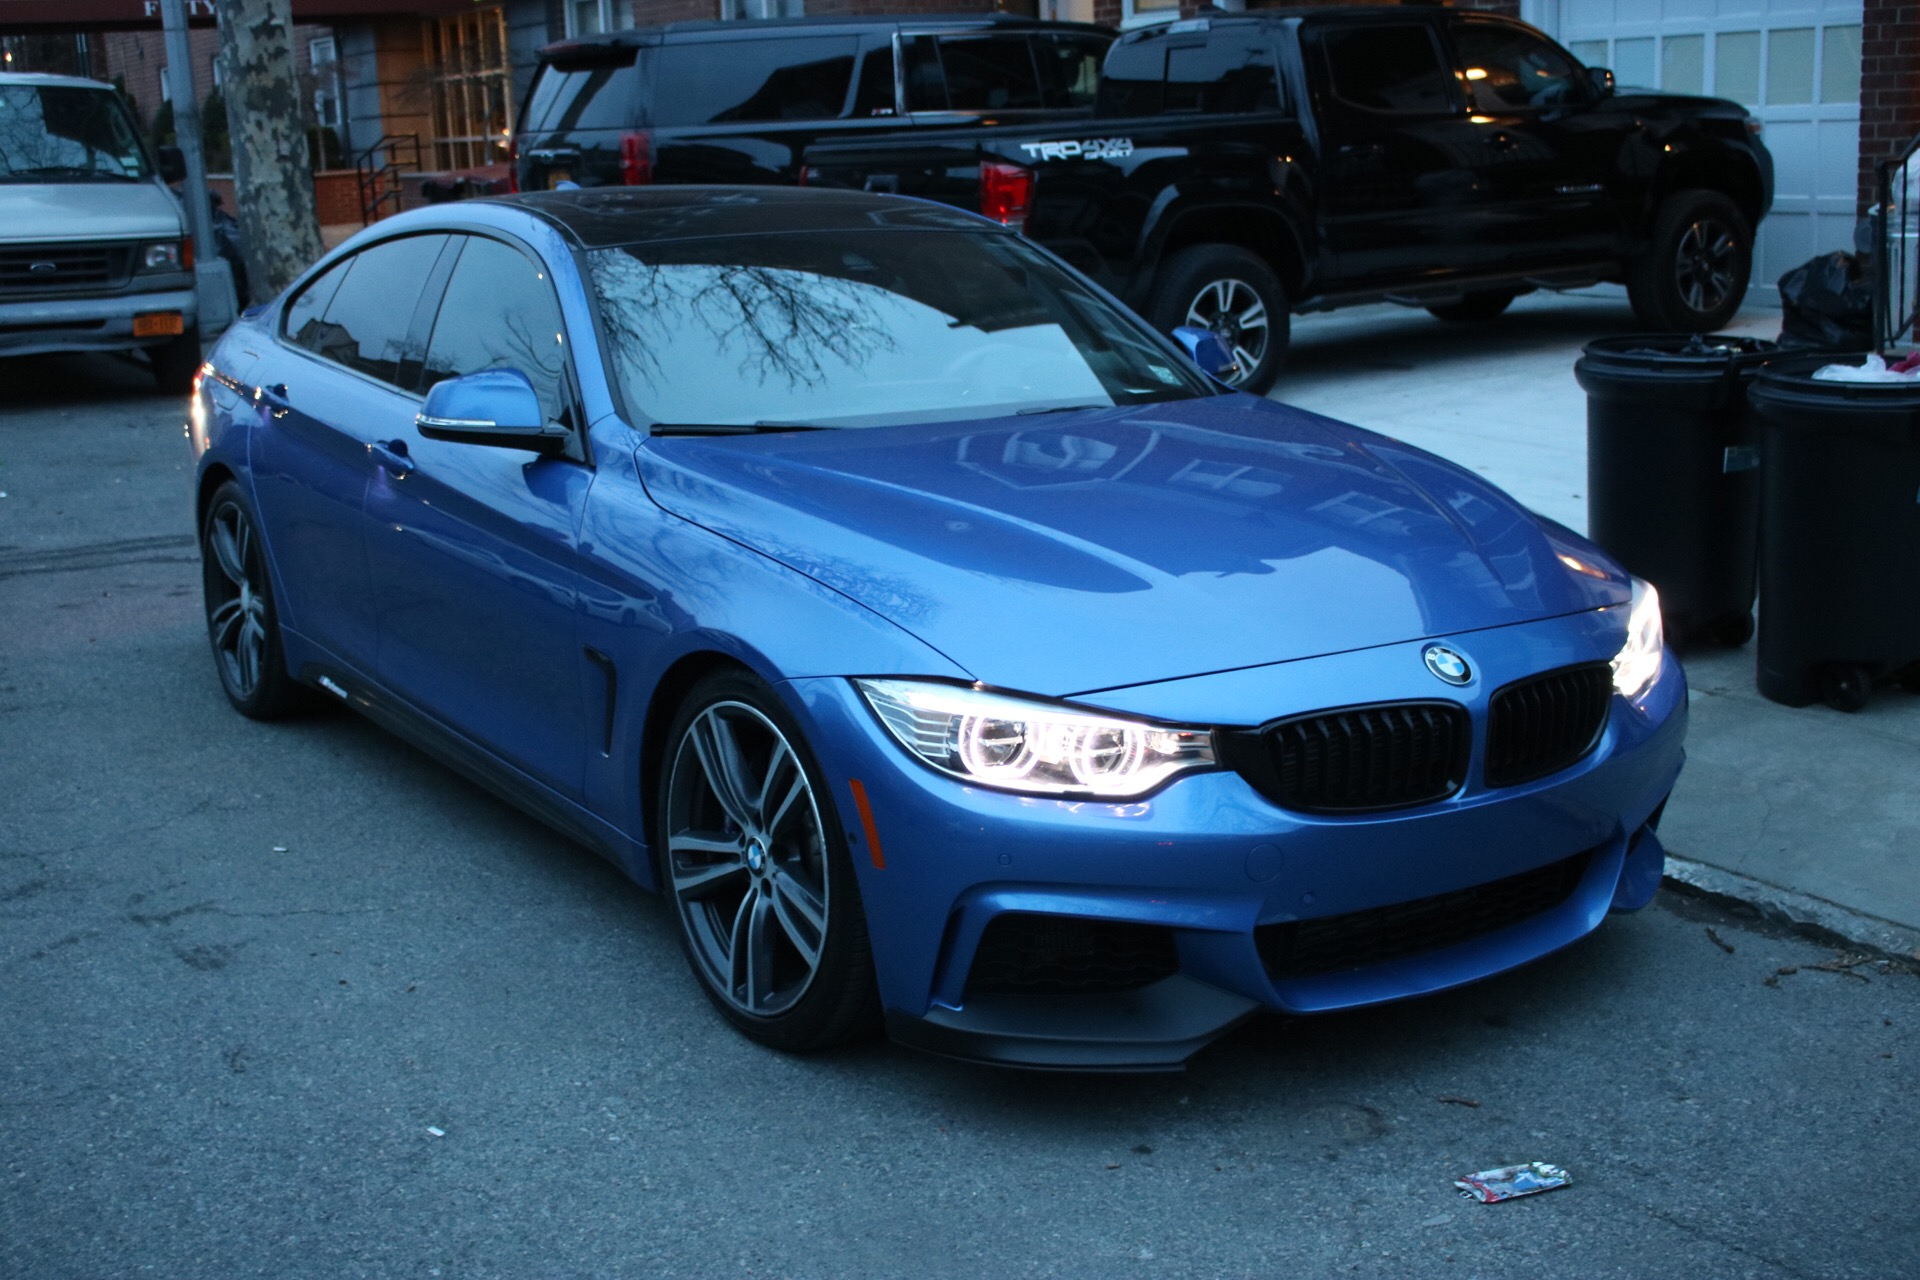 Bmw 435 Lease >> Lease Transfer 2016 Bmw 435i Gran Coupe 498 90 Month Tax